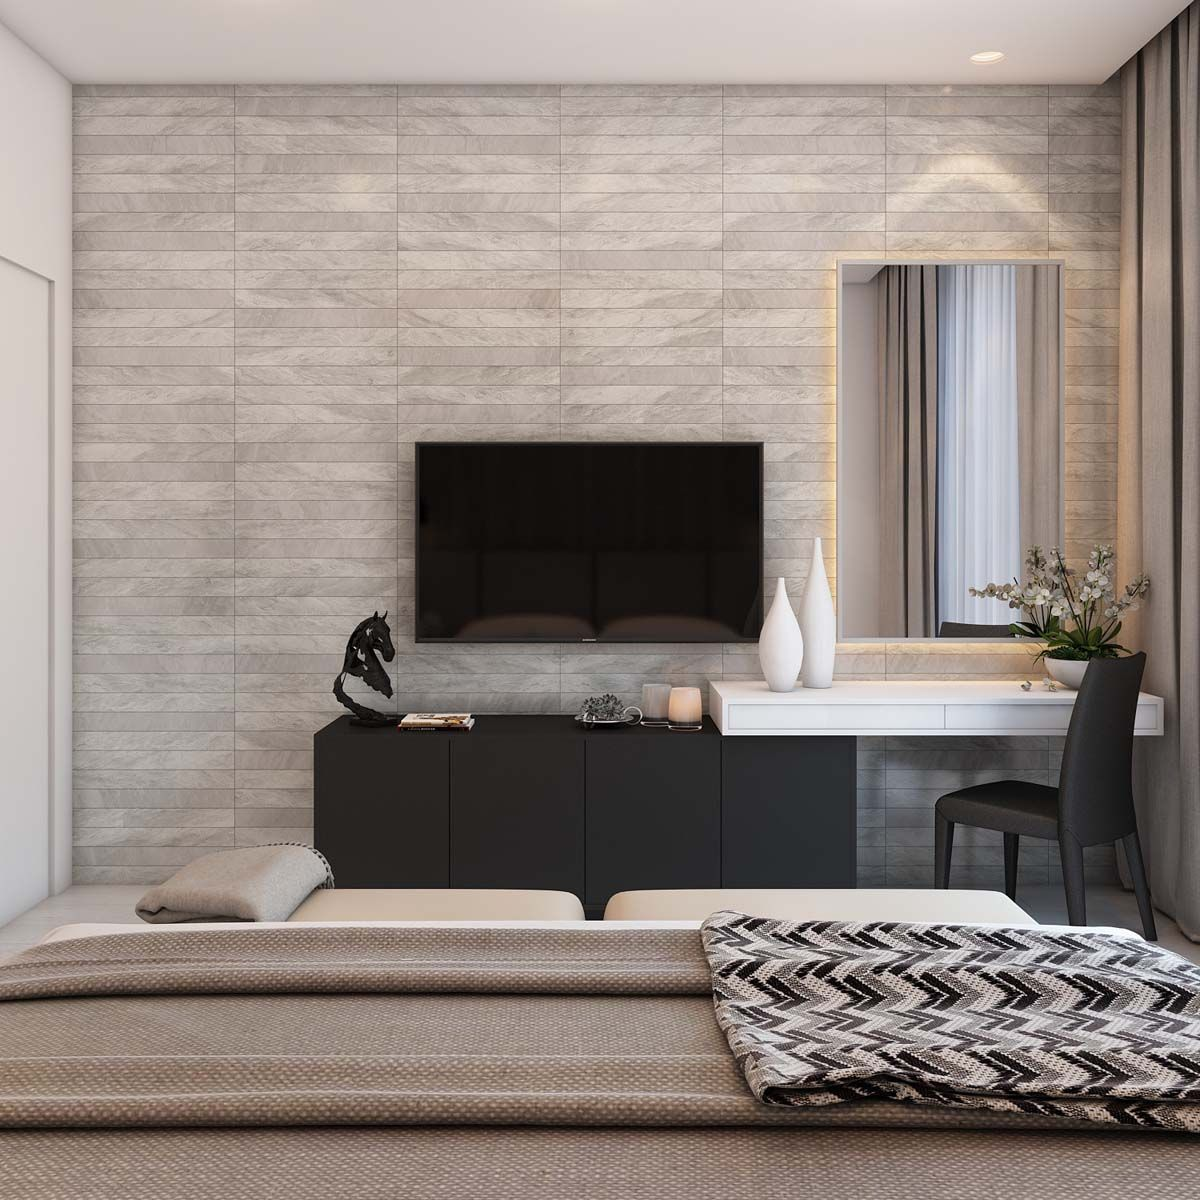 A Simple Modern Apartment In Moscow Apartment Interior Japandi Interior Design Modern Apartment New modern apartment bedroom